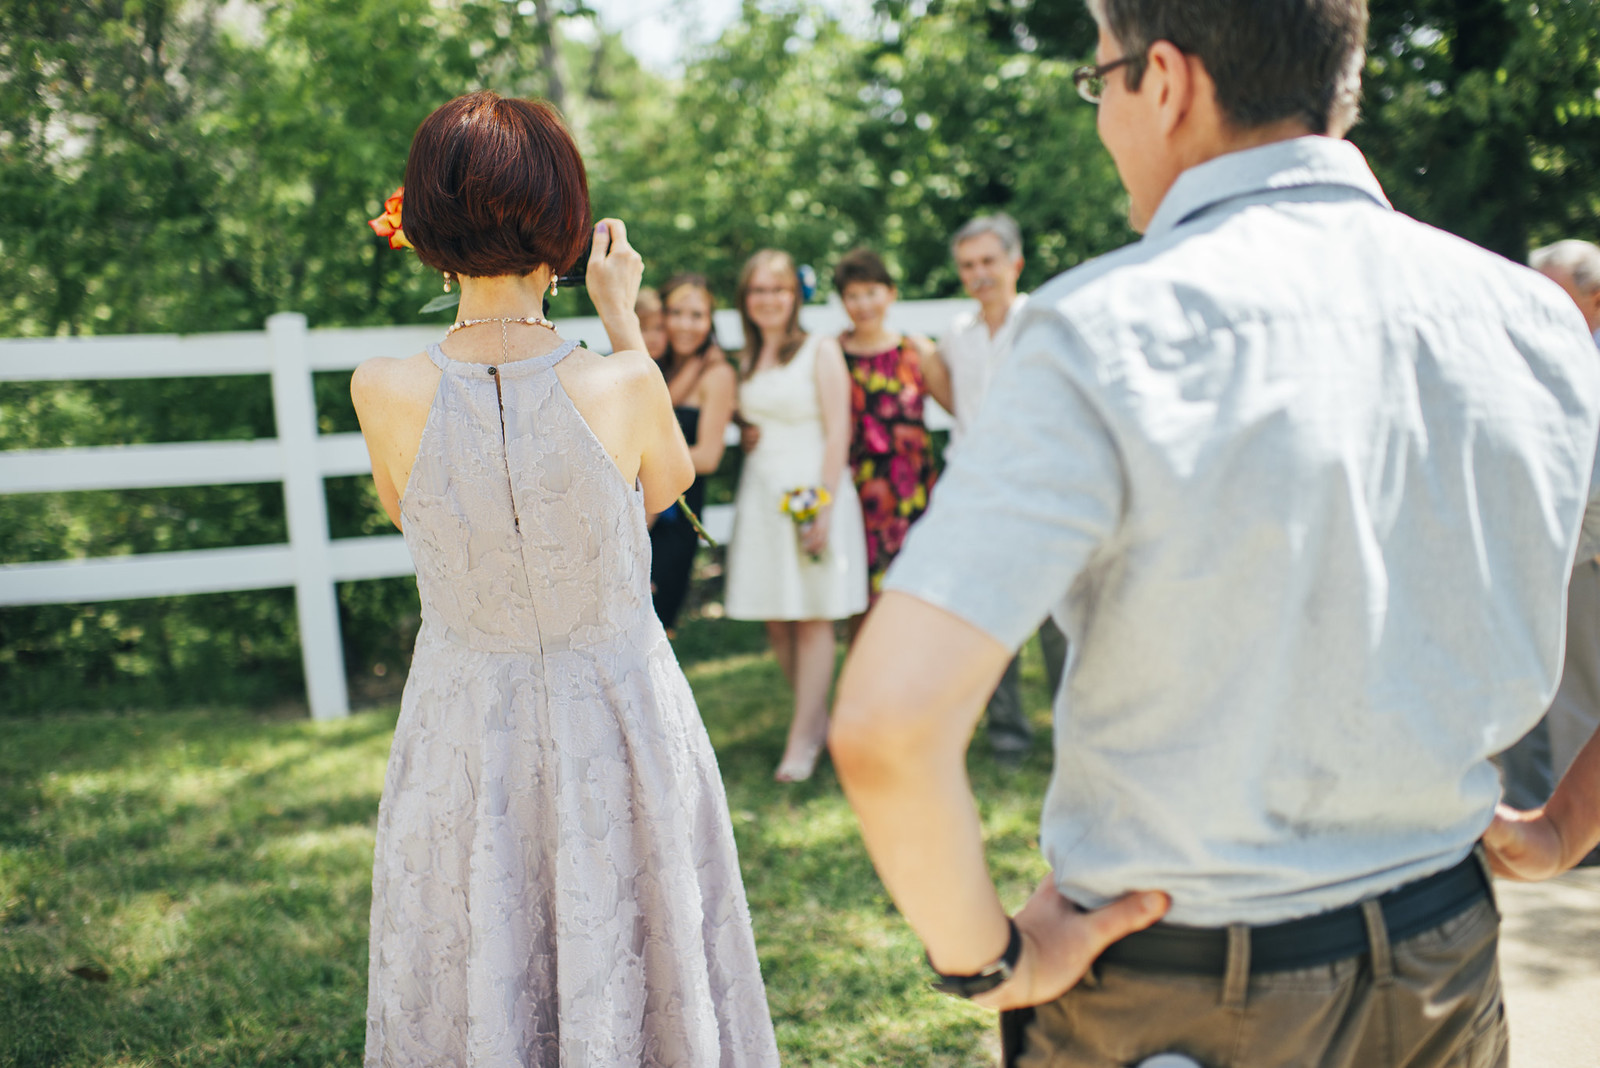 Carnefix Photography | St. Louis Wedding Photography | Missouri Wedding Photography | Klondike Park